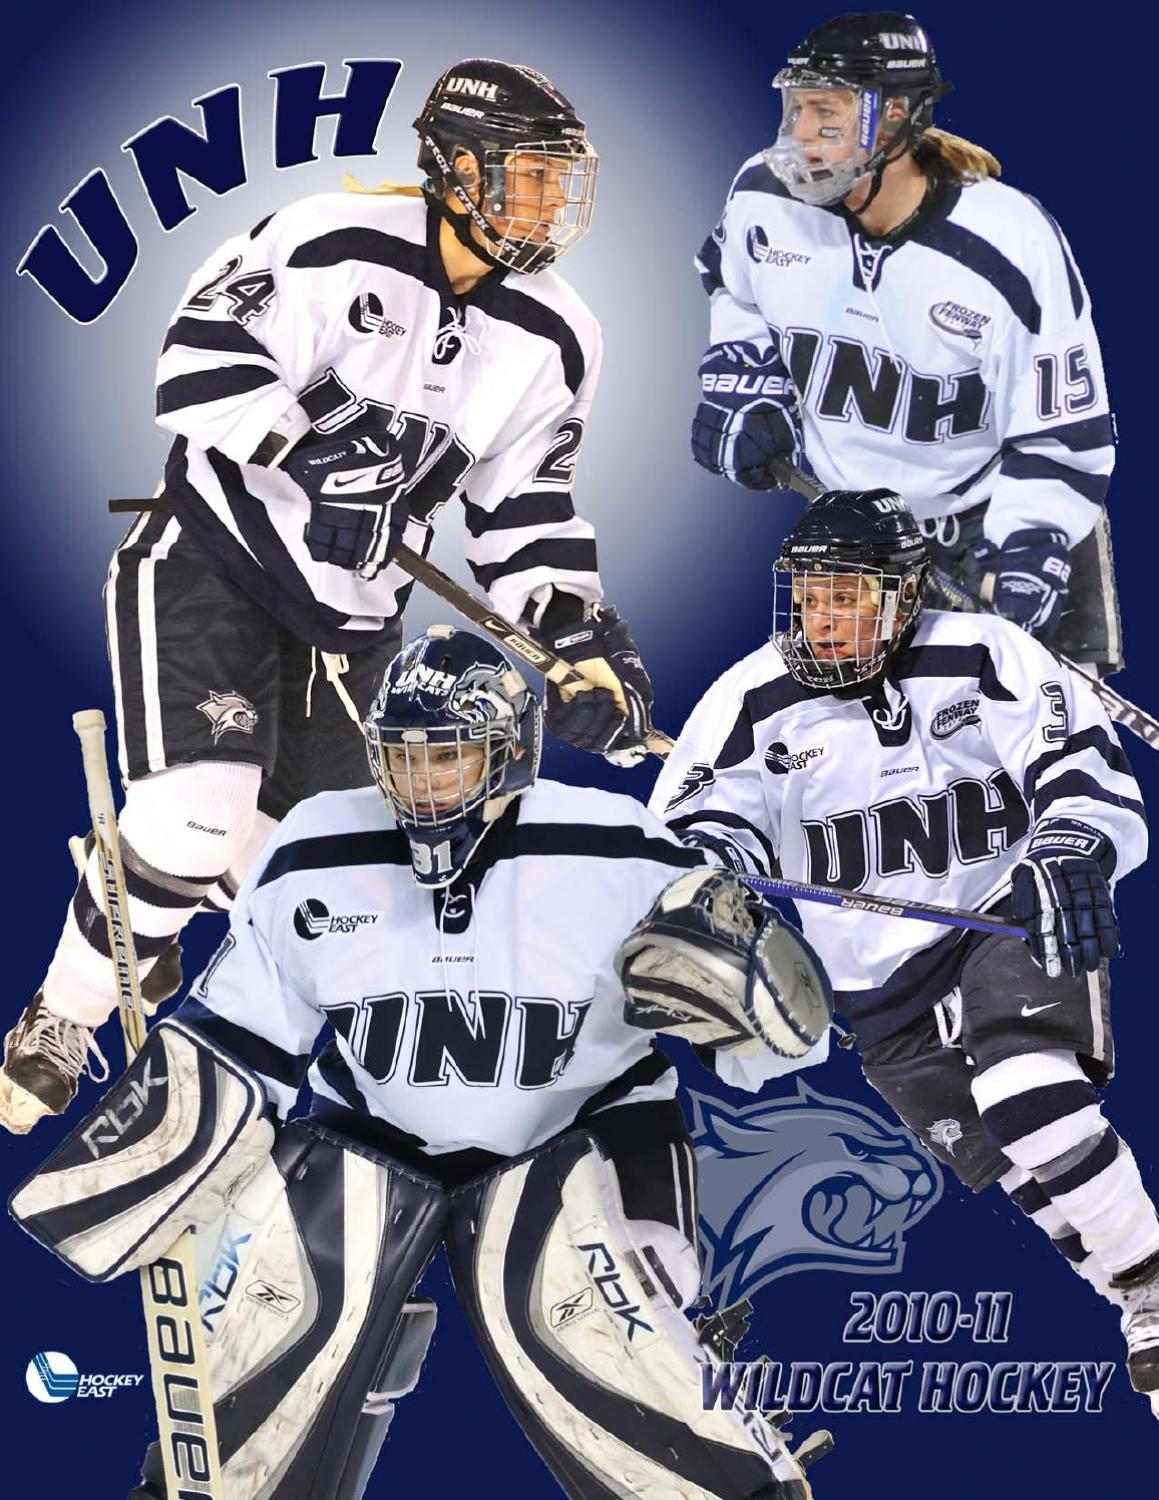 d19b51f95707 2010-11 UNH Women s Ice Hockey Media Guide by University of New Hampshire  Athletics - issuu